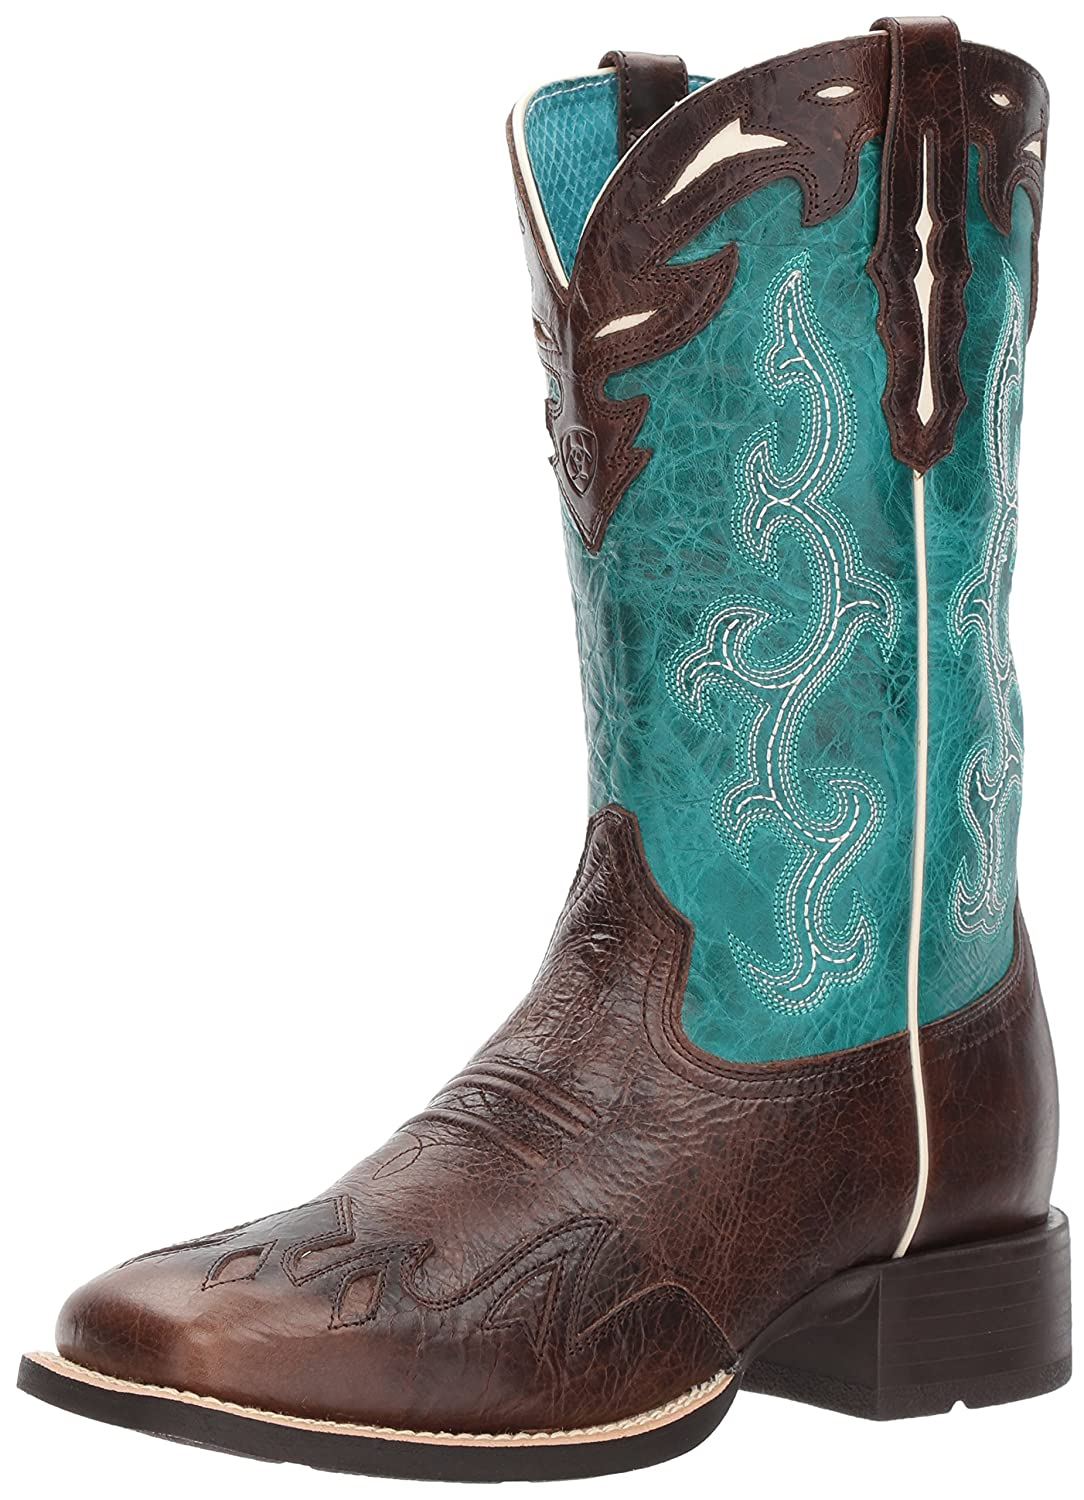 Ariat Women's Sidekick Work Boot Ariat Women' s 10021618